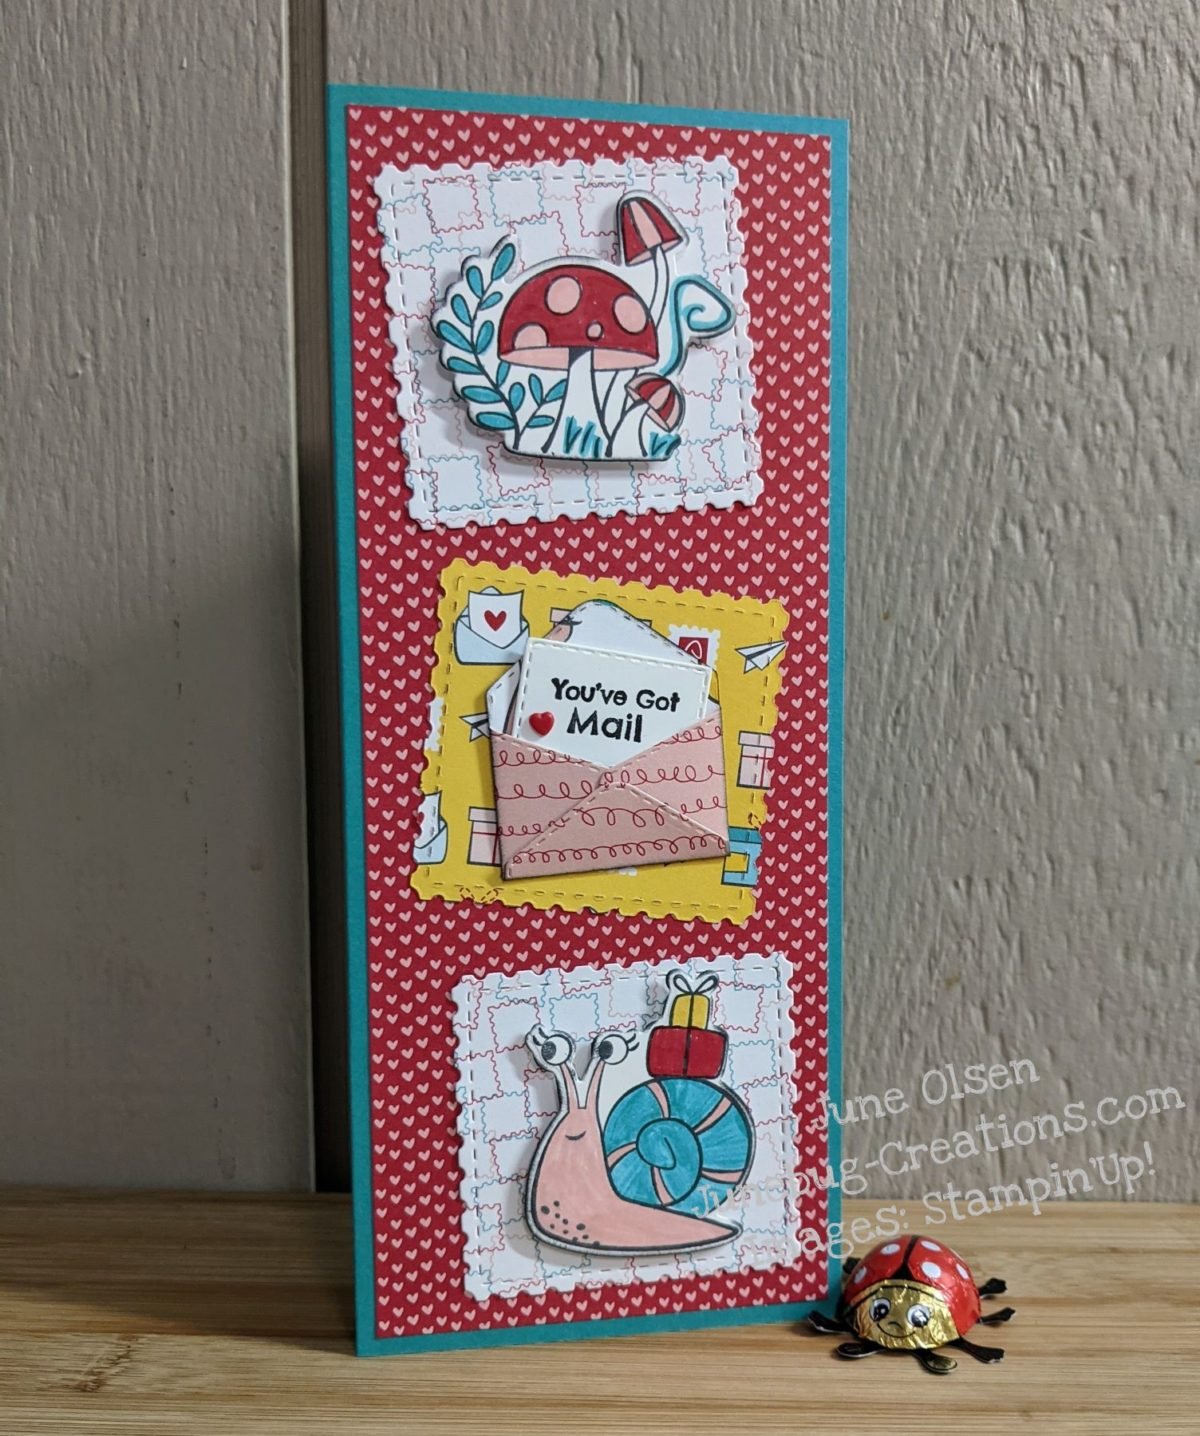 Junebug Creations Valentine's card using Snailed It stampset from Stampin' Up!